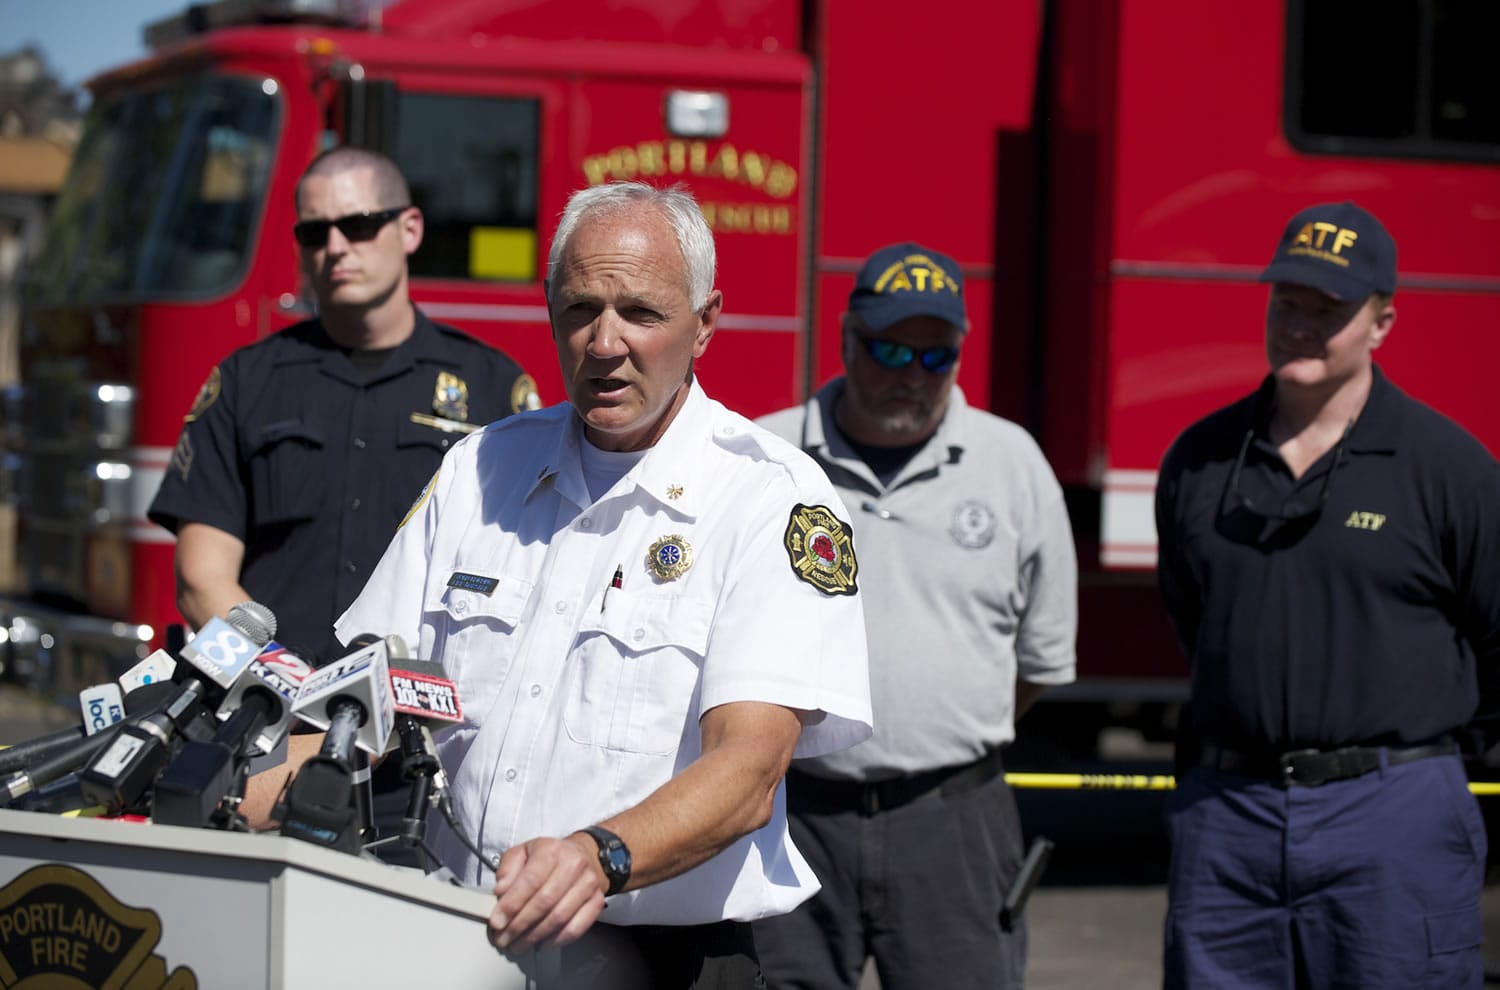 Fire Marshal John Harding addresses the media during a press conference about the investigation of the fire at the Thunderbird Hotel, Tuesday